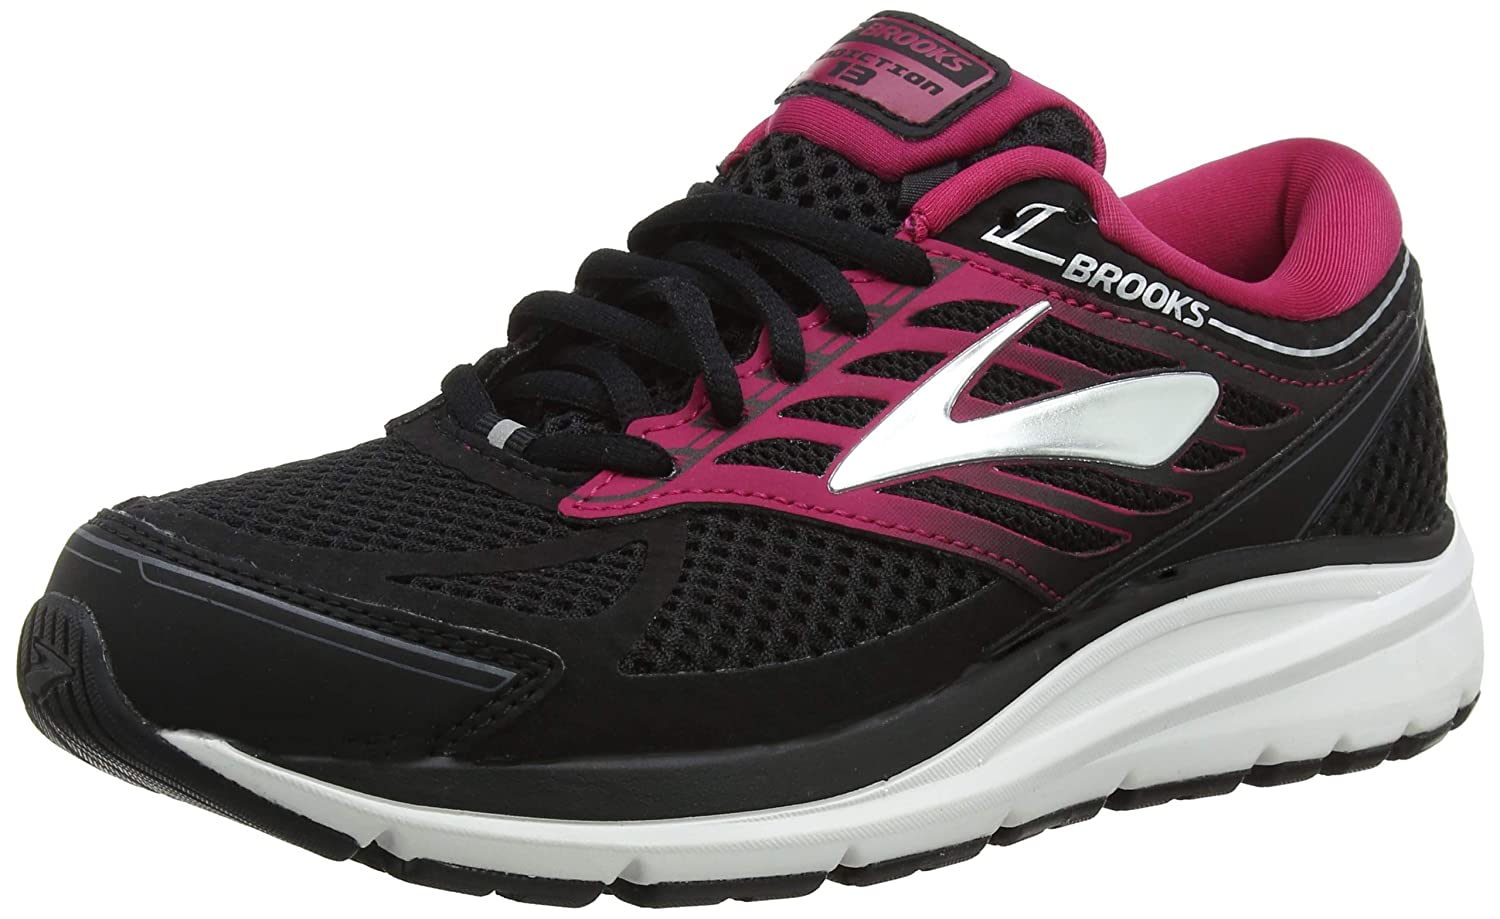 TALLA 42 EU. Brooks Addiction 13, Zapatillas de Running para Mujer